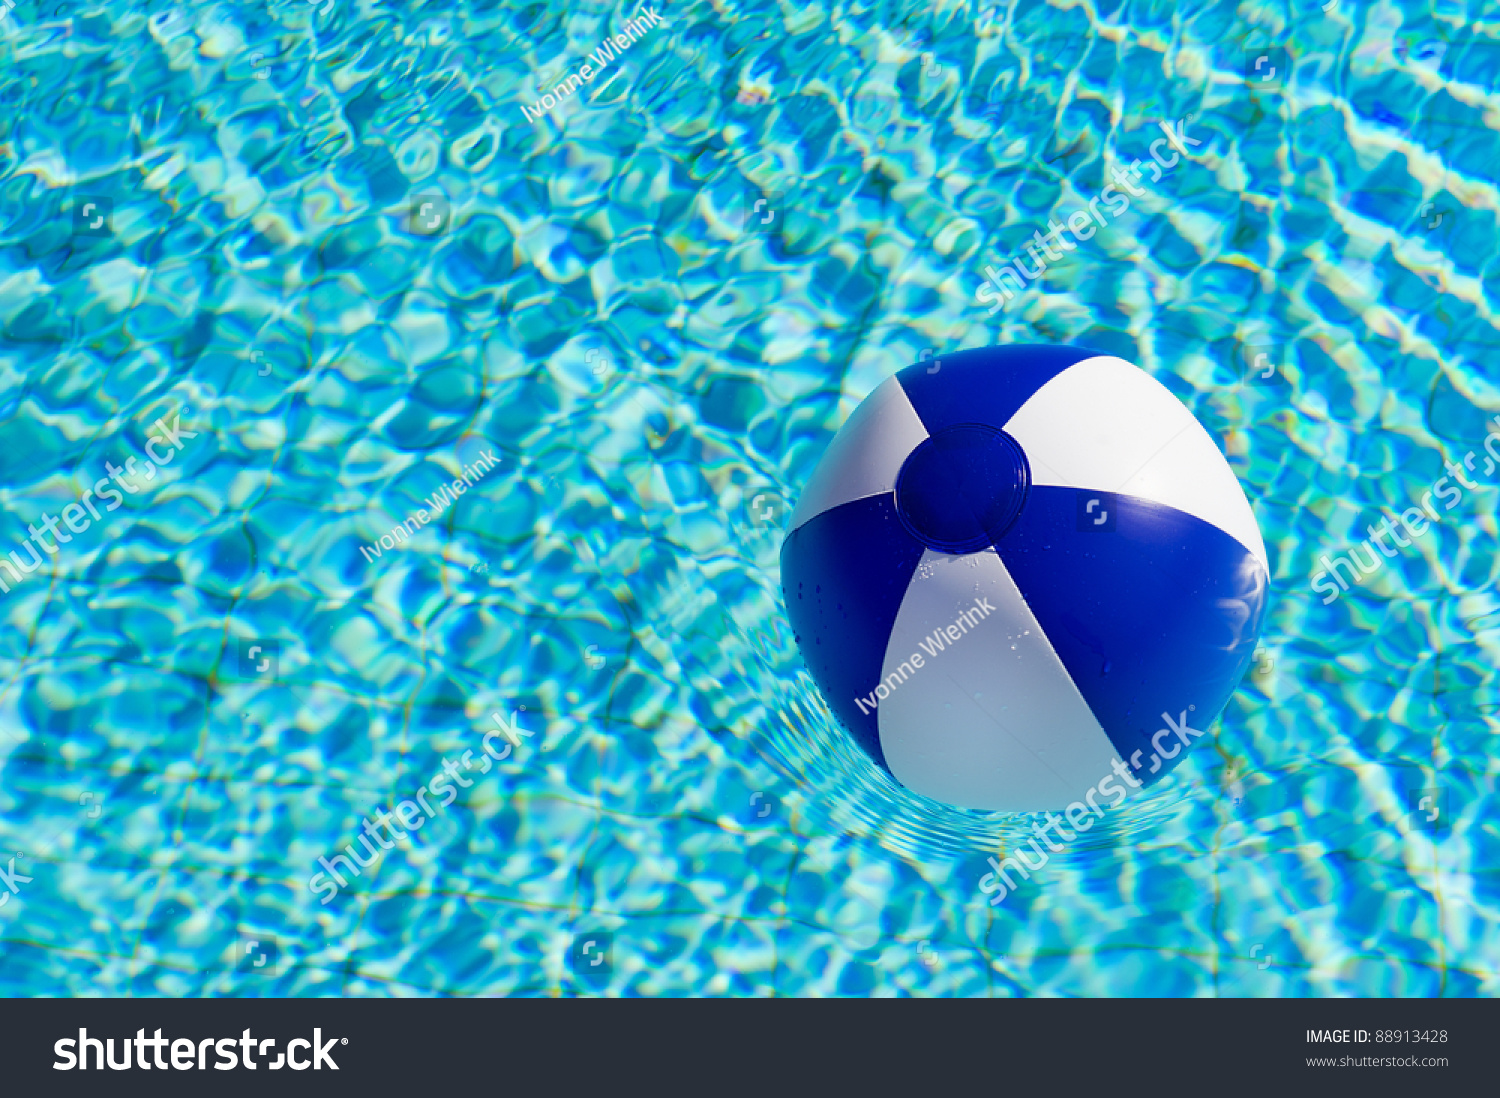 Pool Water With Beach Ball blue white beach ball clear water stock photo 88913428 - shutterstock